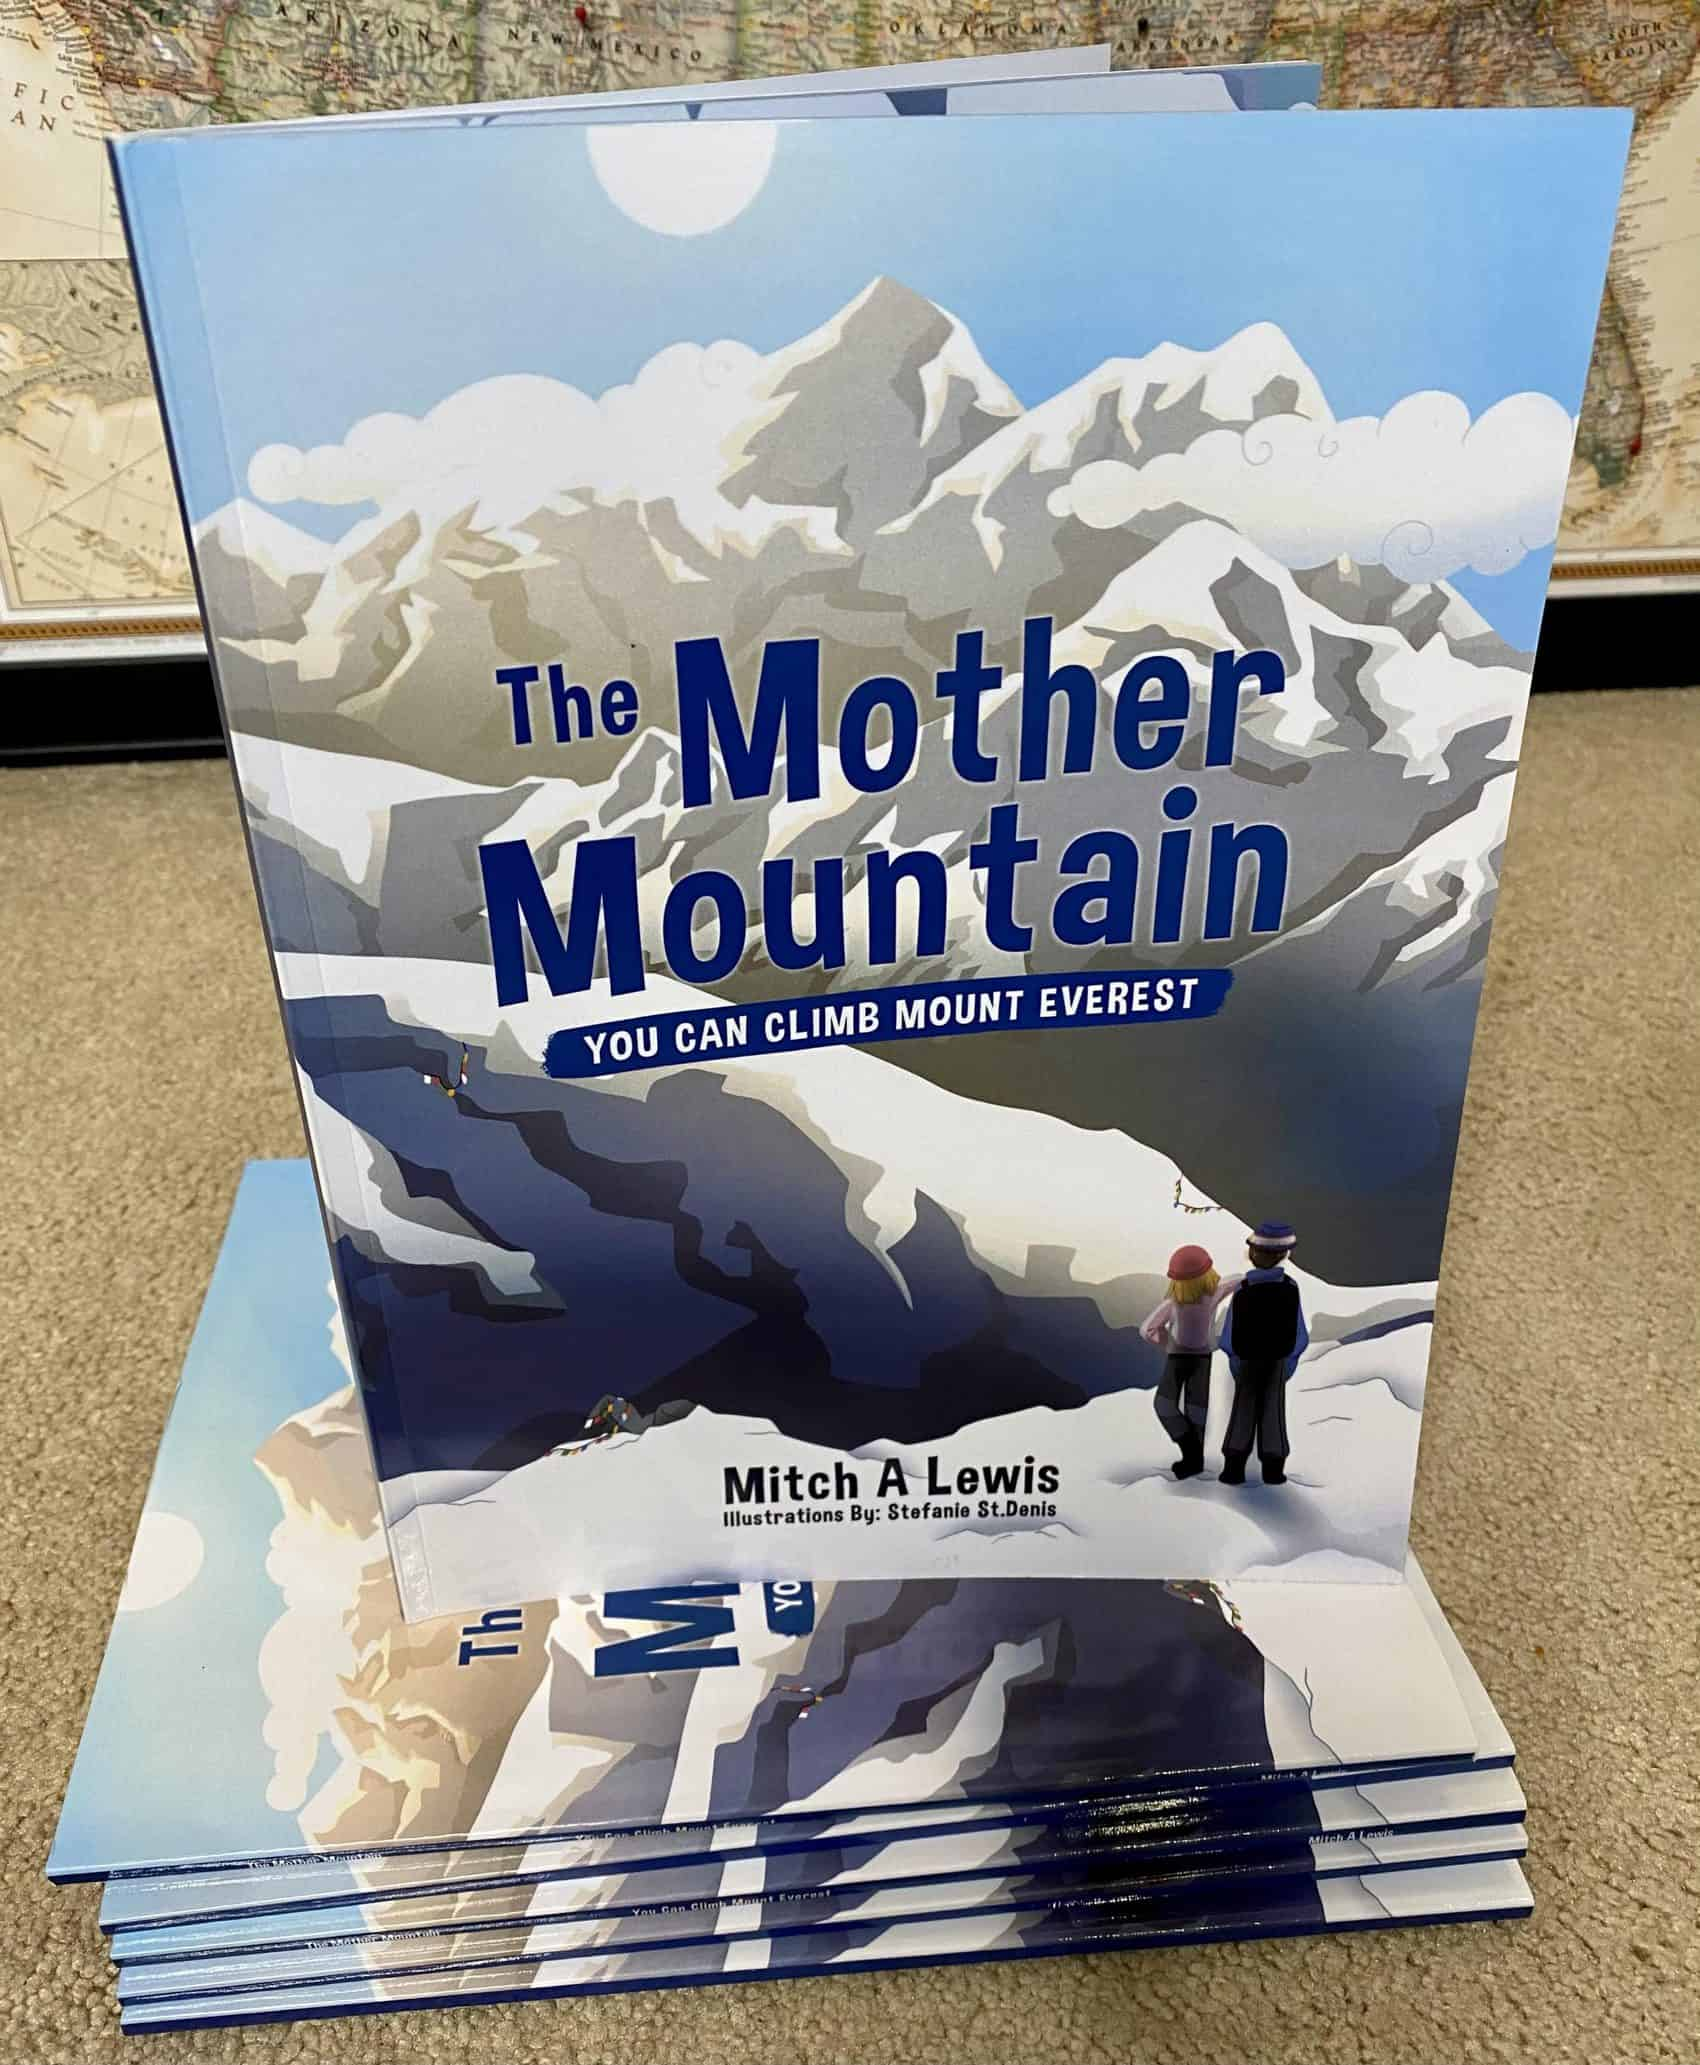 The Mother Mountain